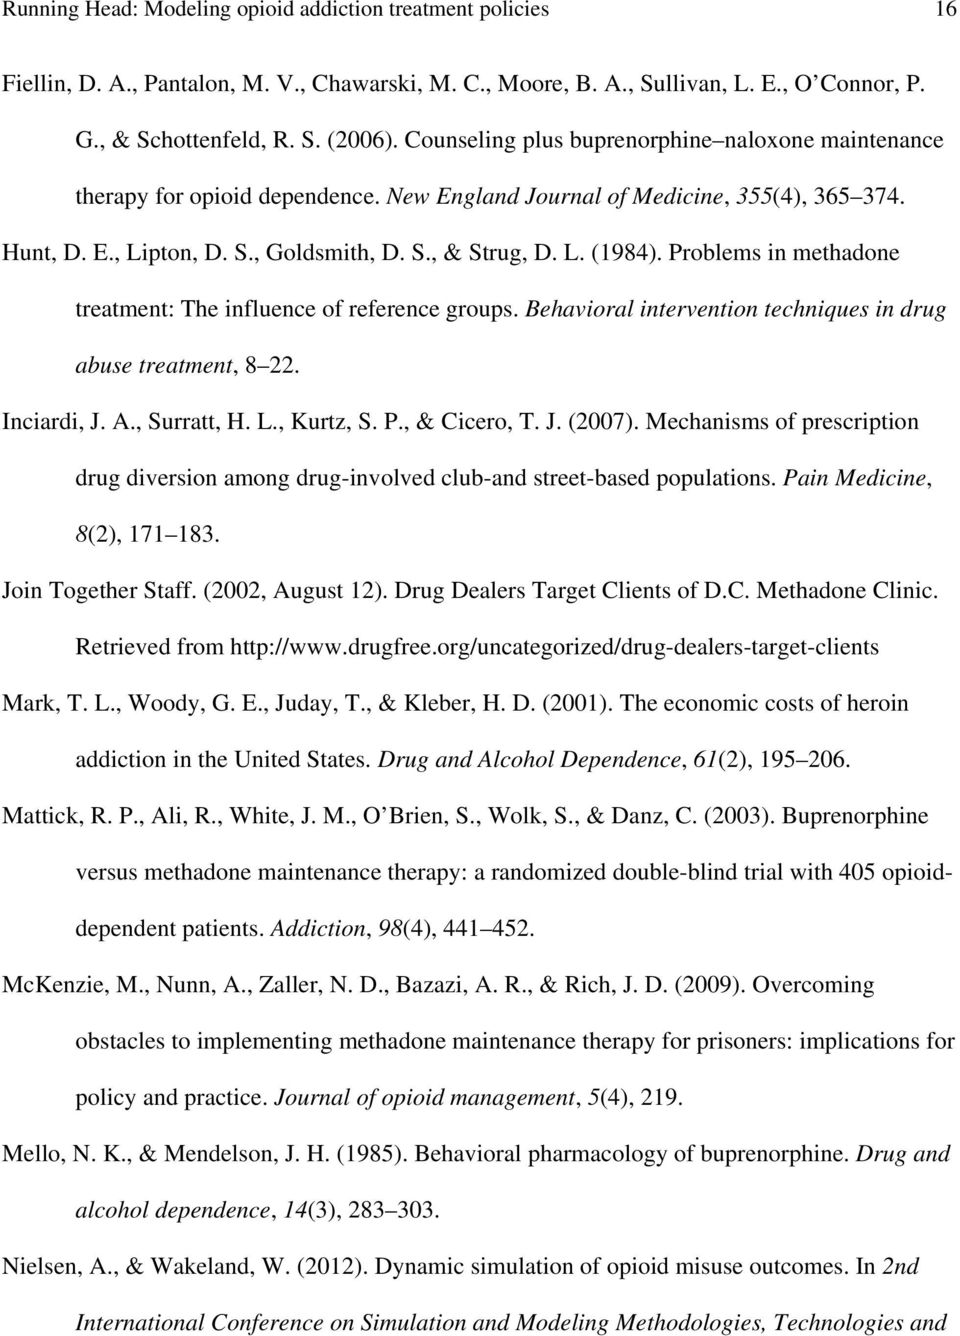 Problems in methadone treatment: The influence of reference groups. Behavioral intervention techniques in drug abuse treatment, 8 22. Inciardi, J. A., Surratt, H. L., Kurtz, S. P., & Cicero, T. J. (2007).